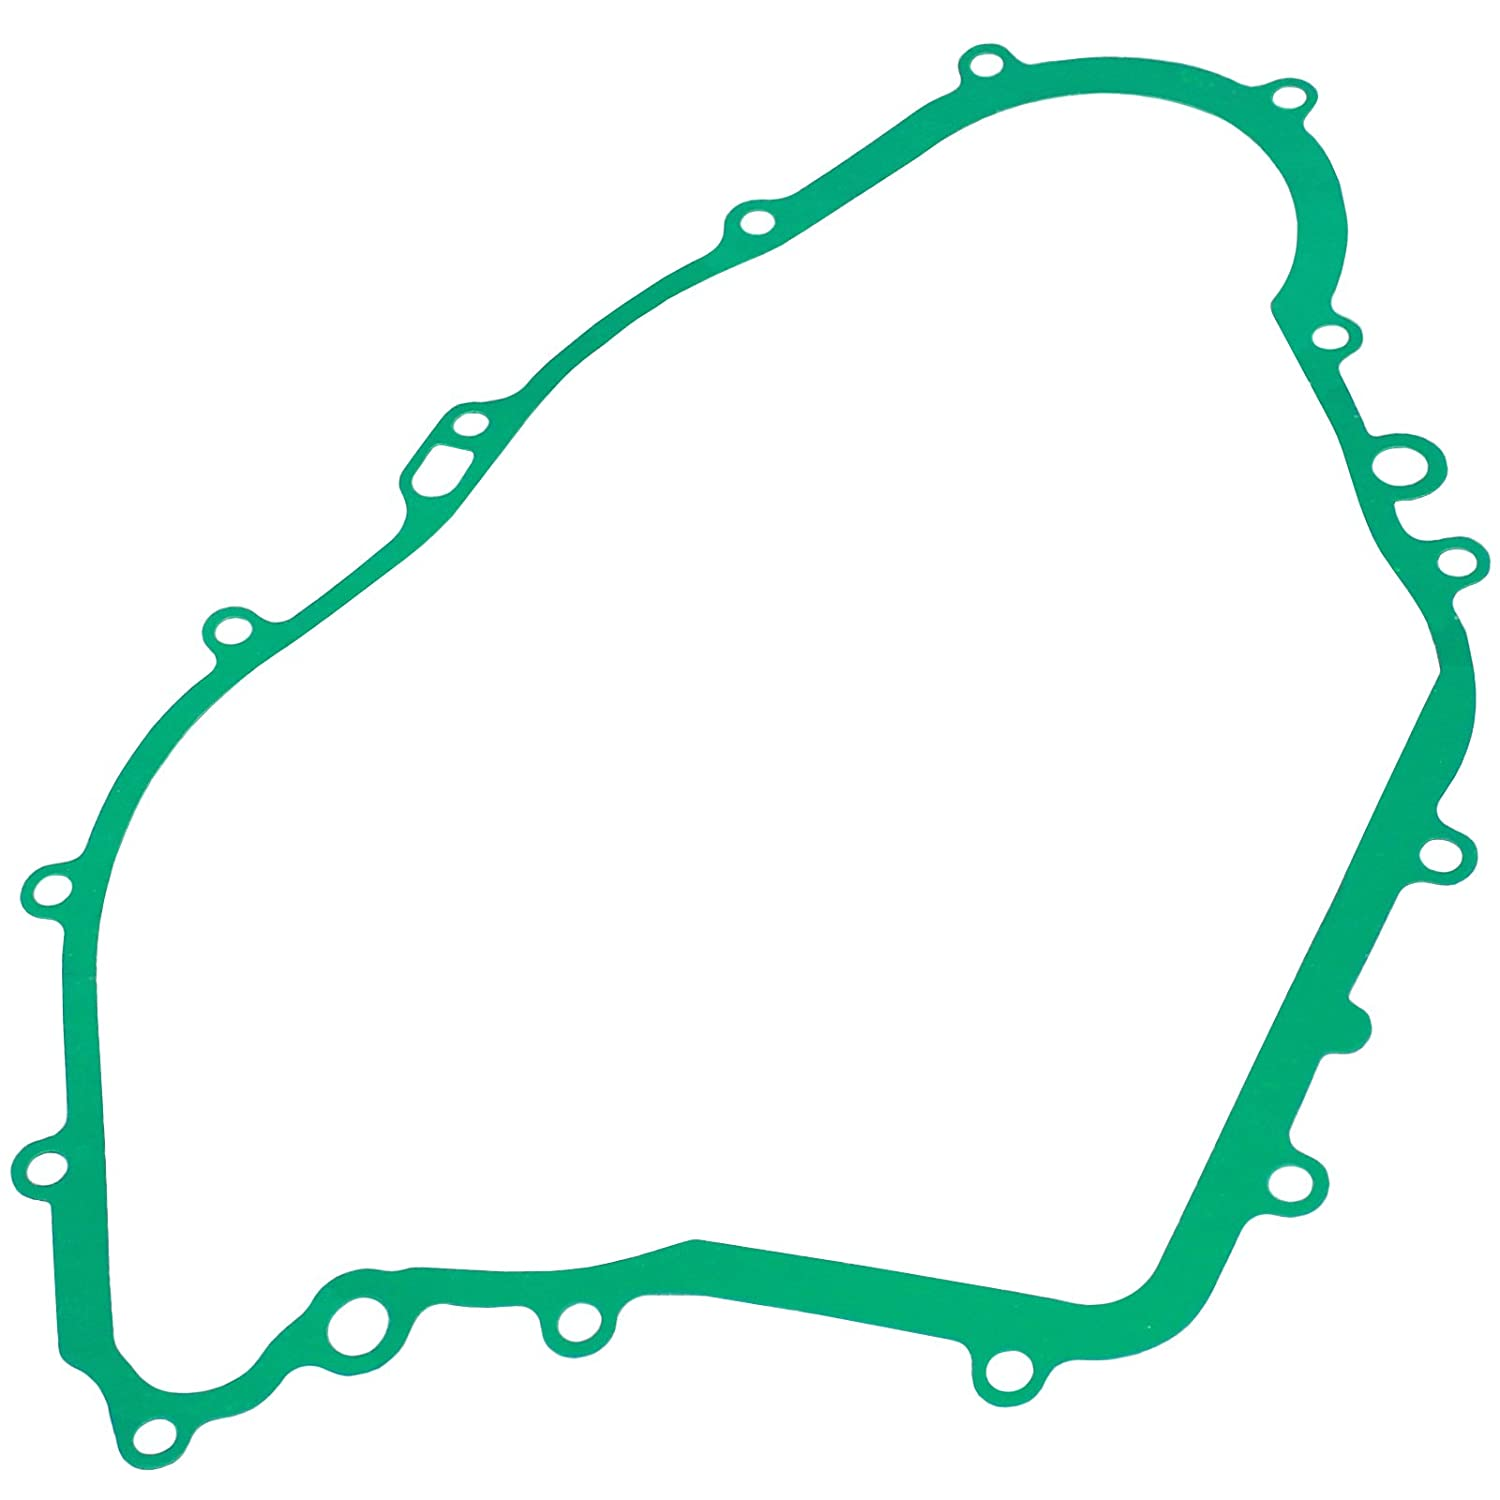 CALTRIC CLUTCH COVER GASKET FITS YAMAHA WOLVERINE 350 YFM350 1995 1996 1997 1998 1999-2005